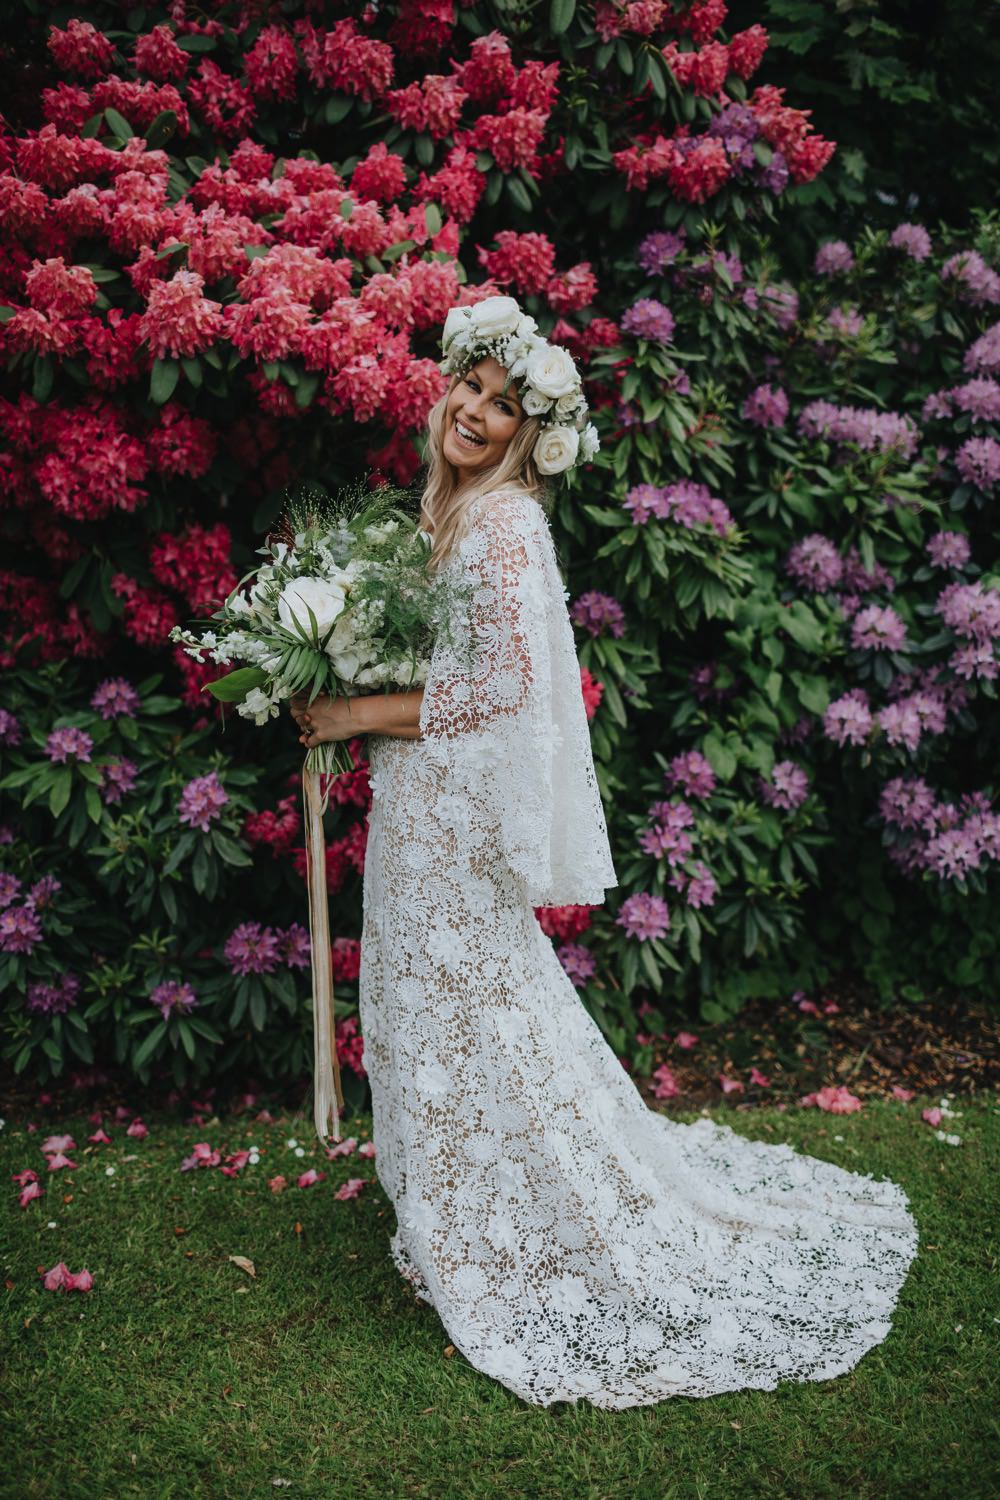 Dress Gown Bride Bridal Lace Cape Sleeves Sarah Seven Train Sefton Park Wedding Bloom Weddings